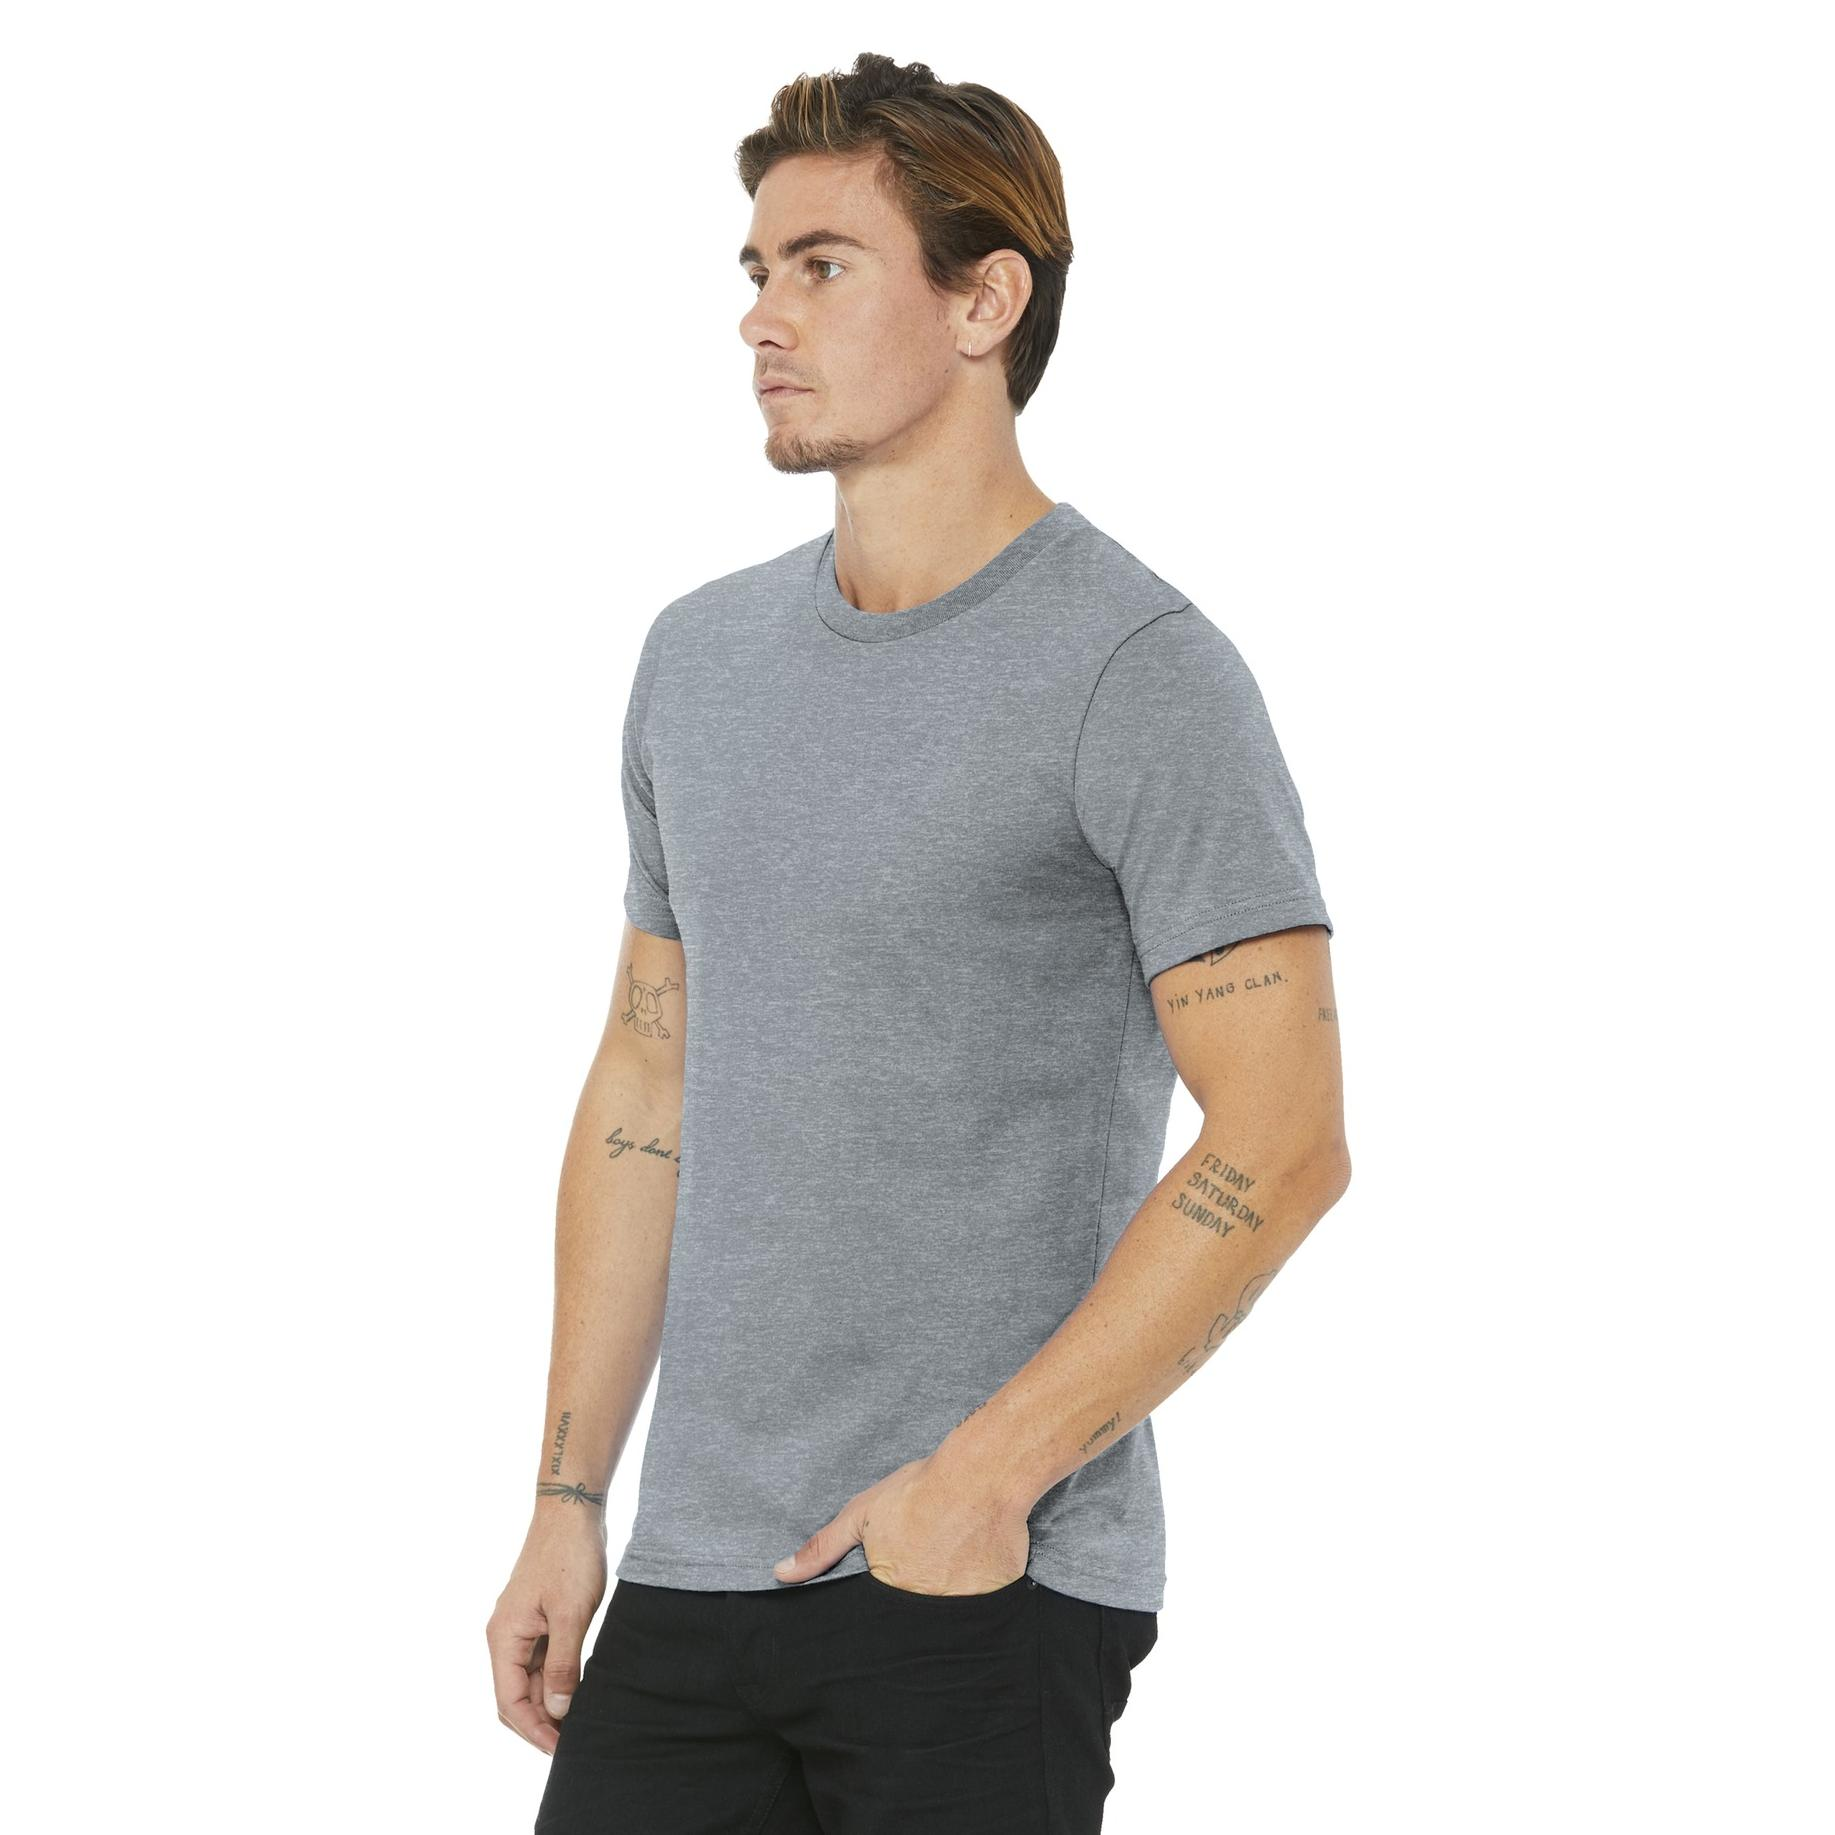 a812cbc90 Bella + Canvas BC3001U Unisex Made In The USA Jersey Short Sleeve Tee -  Athletic Heather | FullSource.com